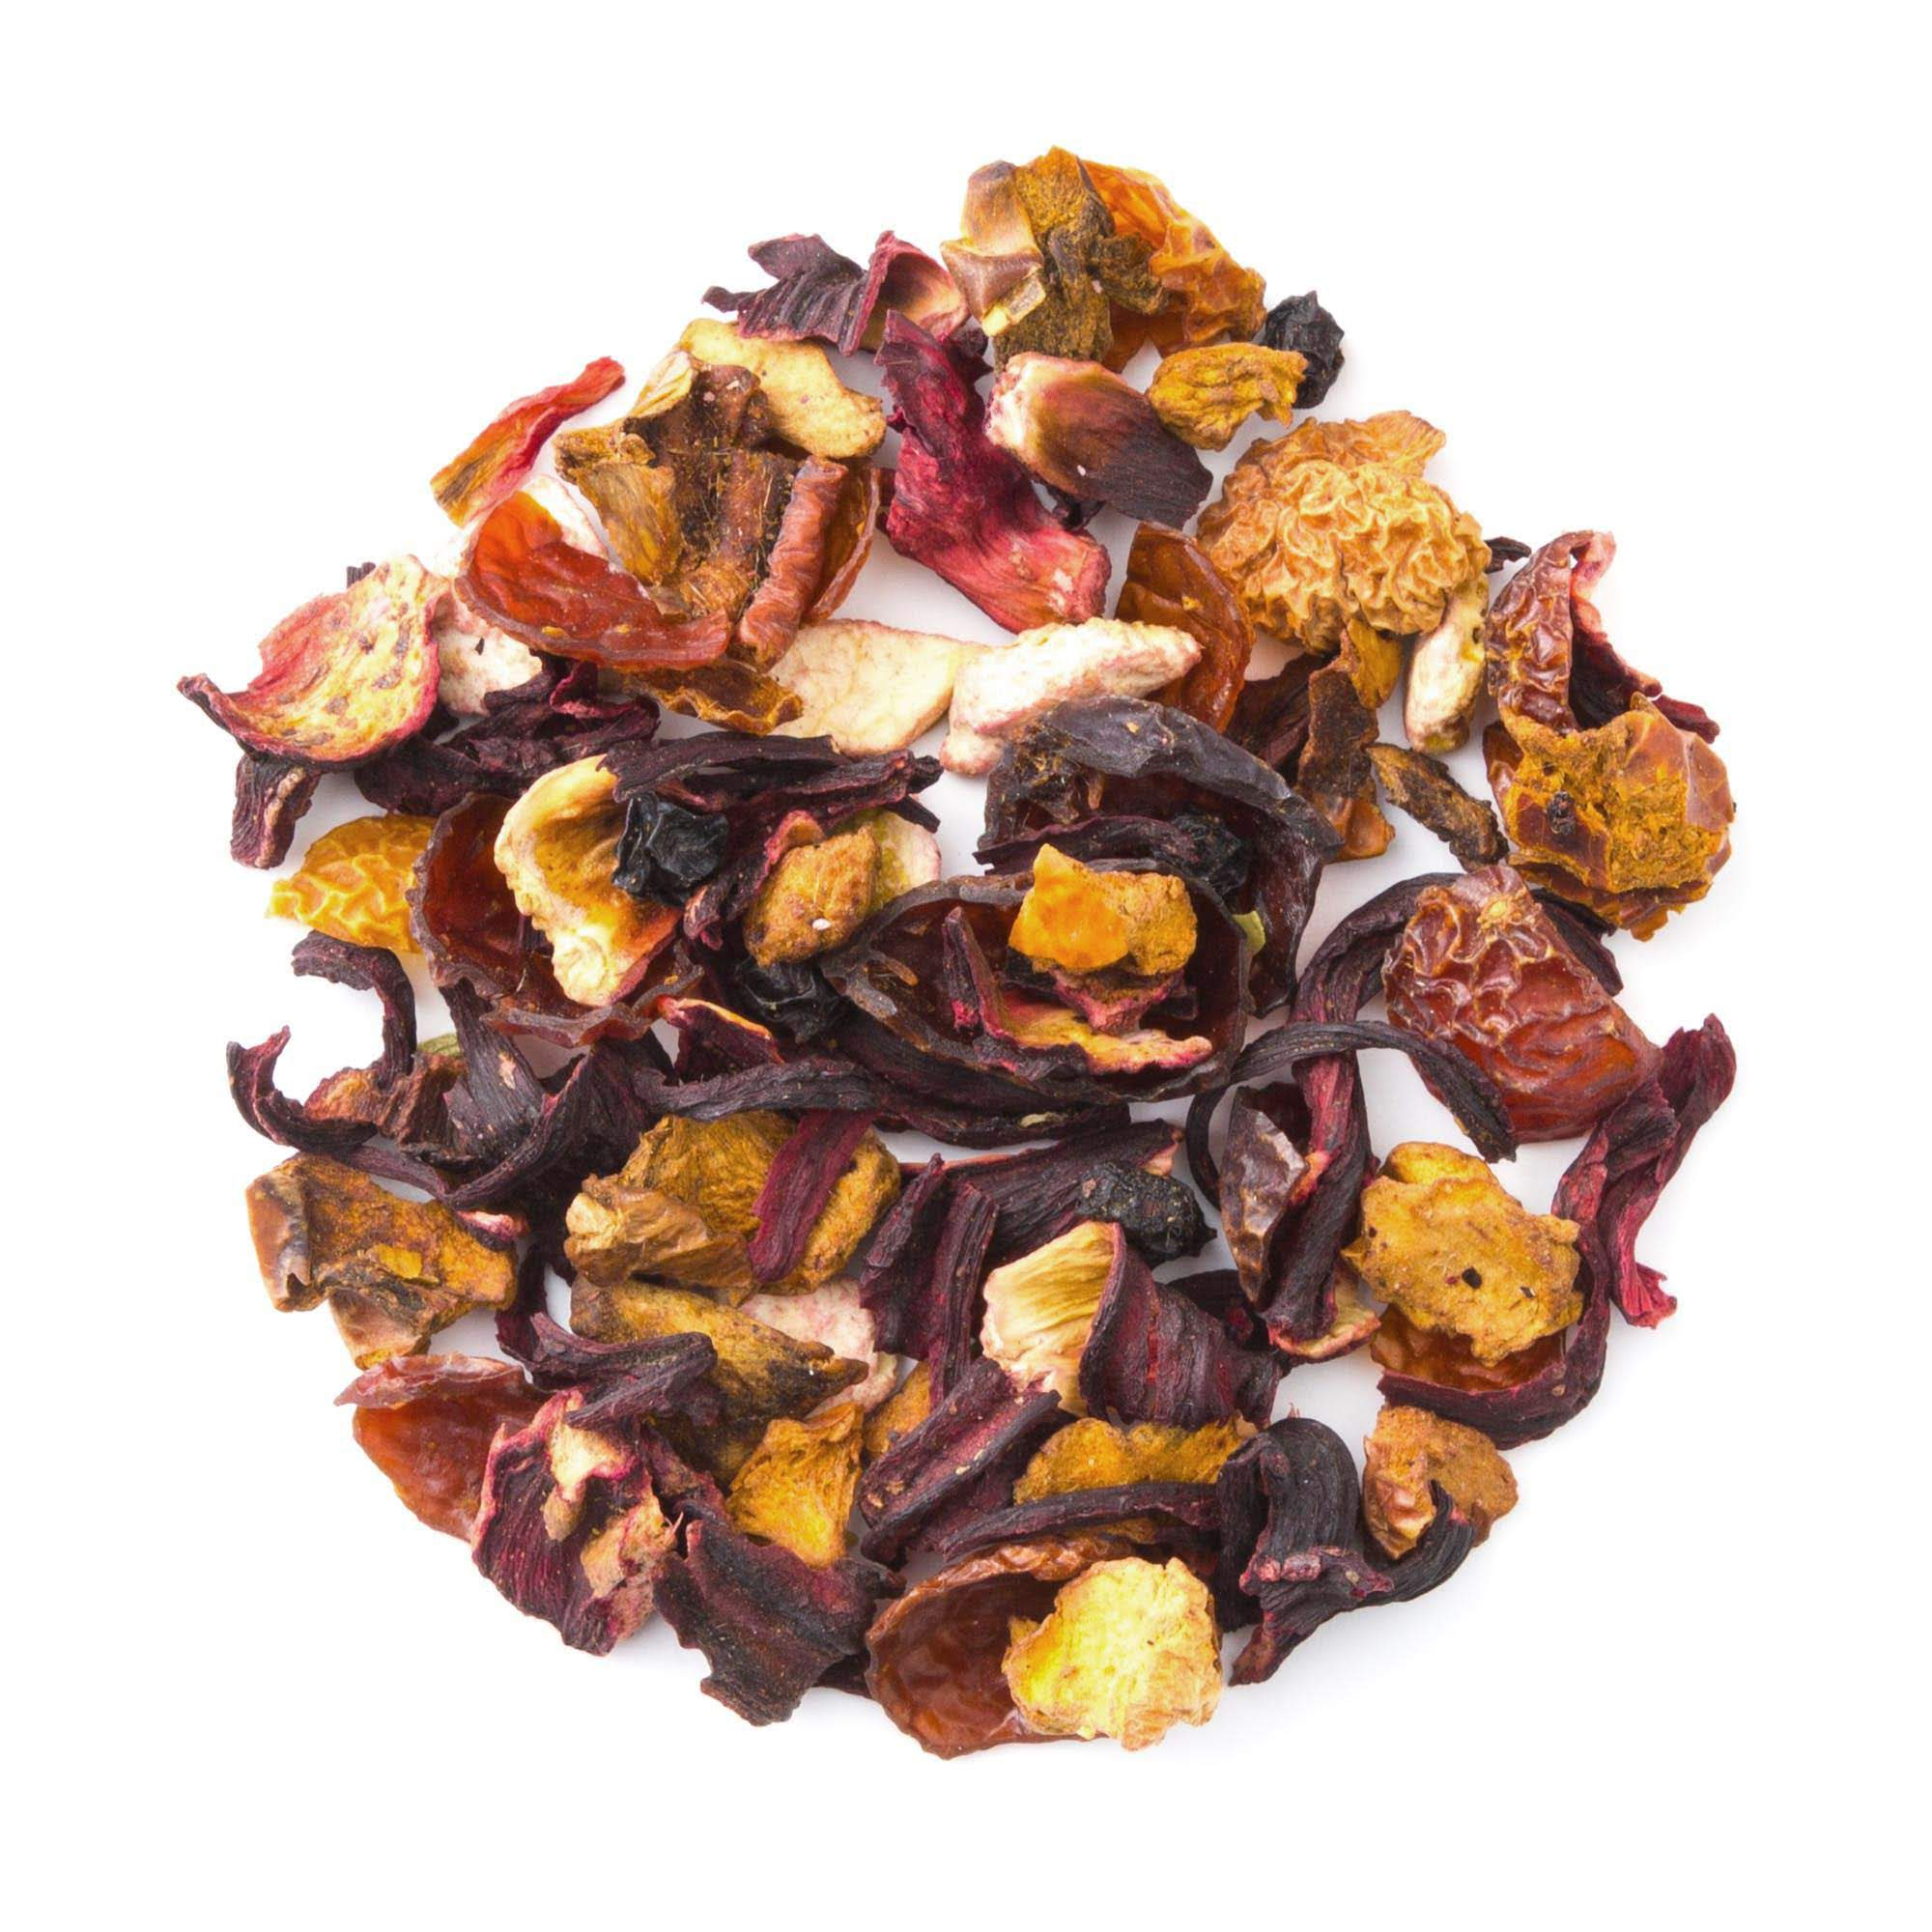 Fruity Teas - Fruit Teas - Make For Great Hot or Iced Teas - Heavenly Tea Leaves